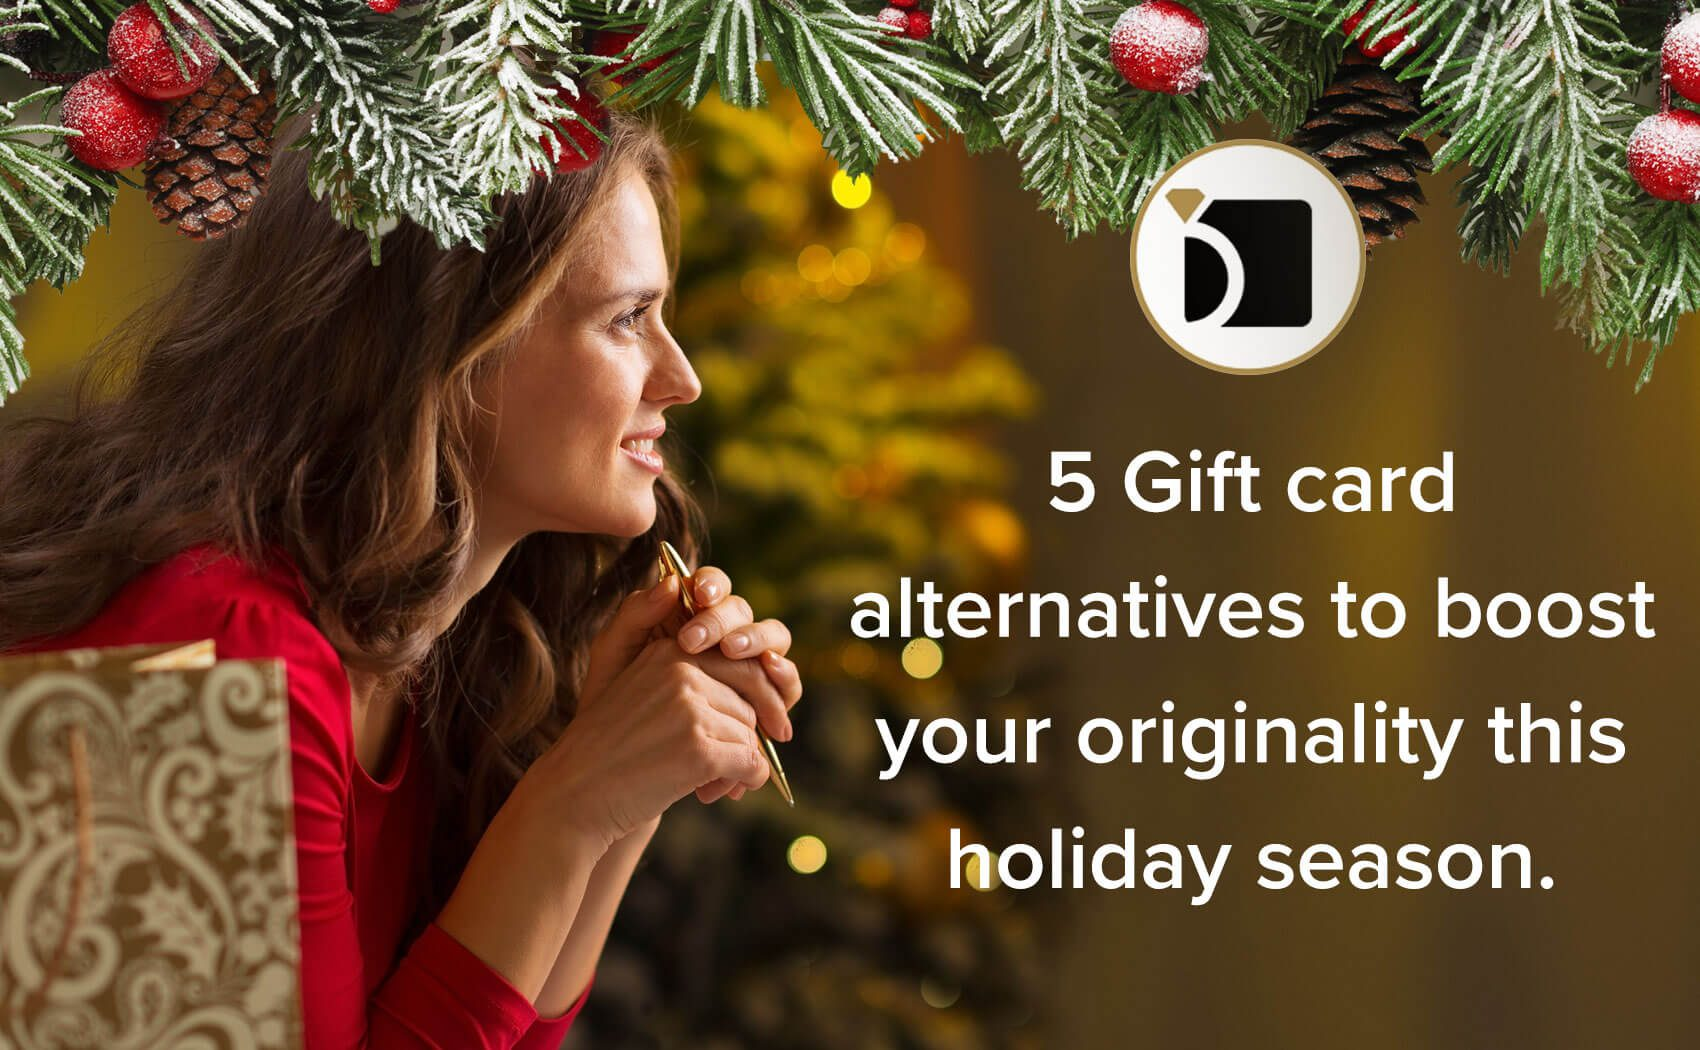 5 Gift Card Alternatives to Boost Your Originality this Holiday Season